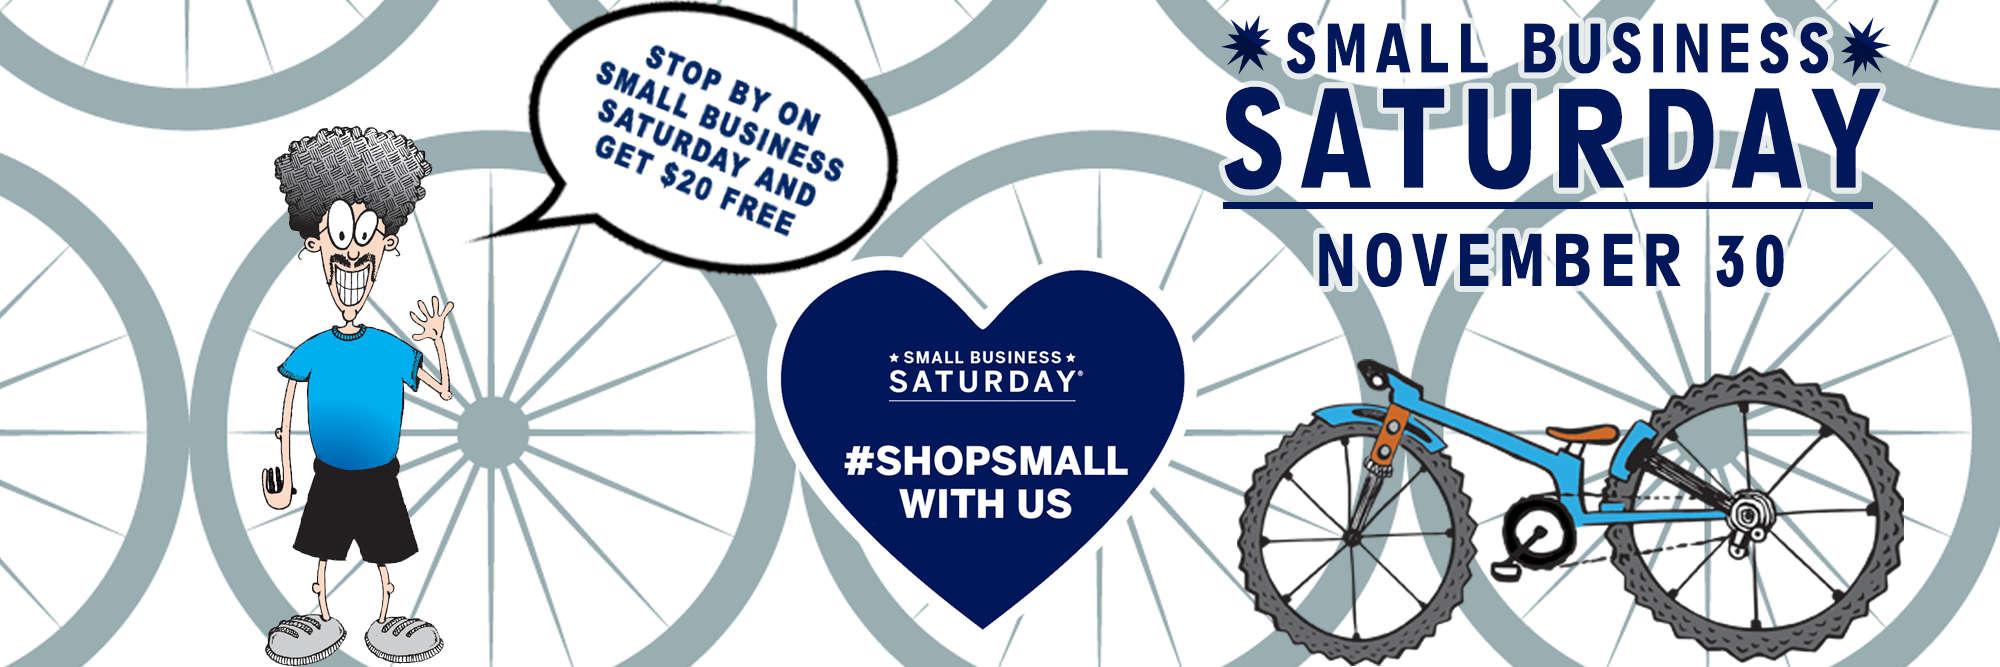 Small Business Saturday at Marty's Reliable Cycle